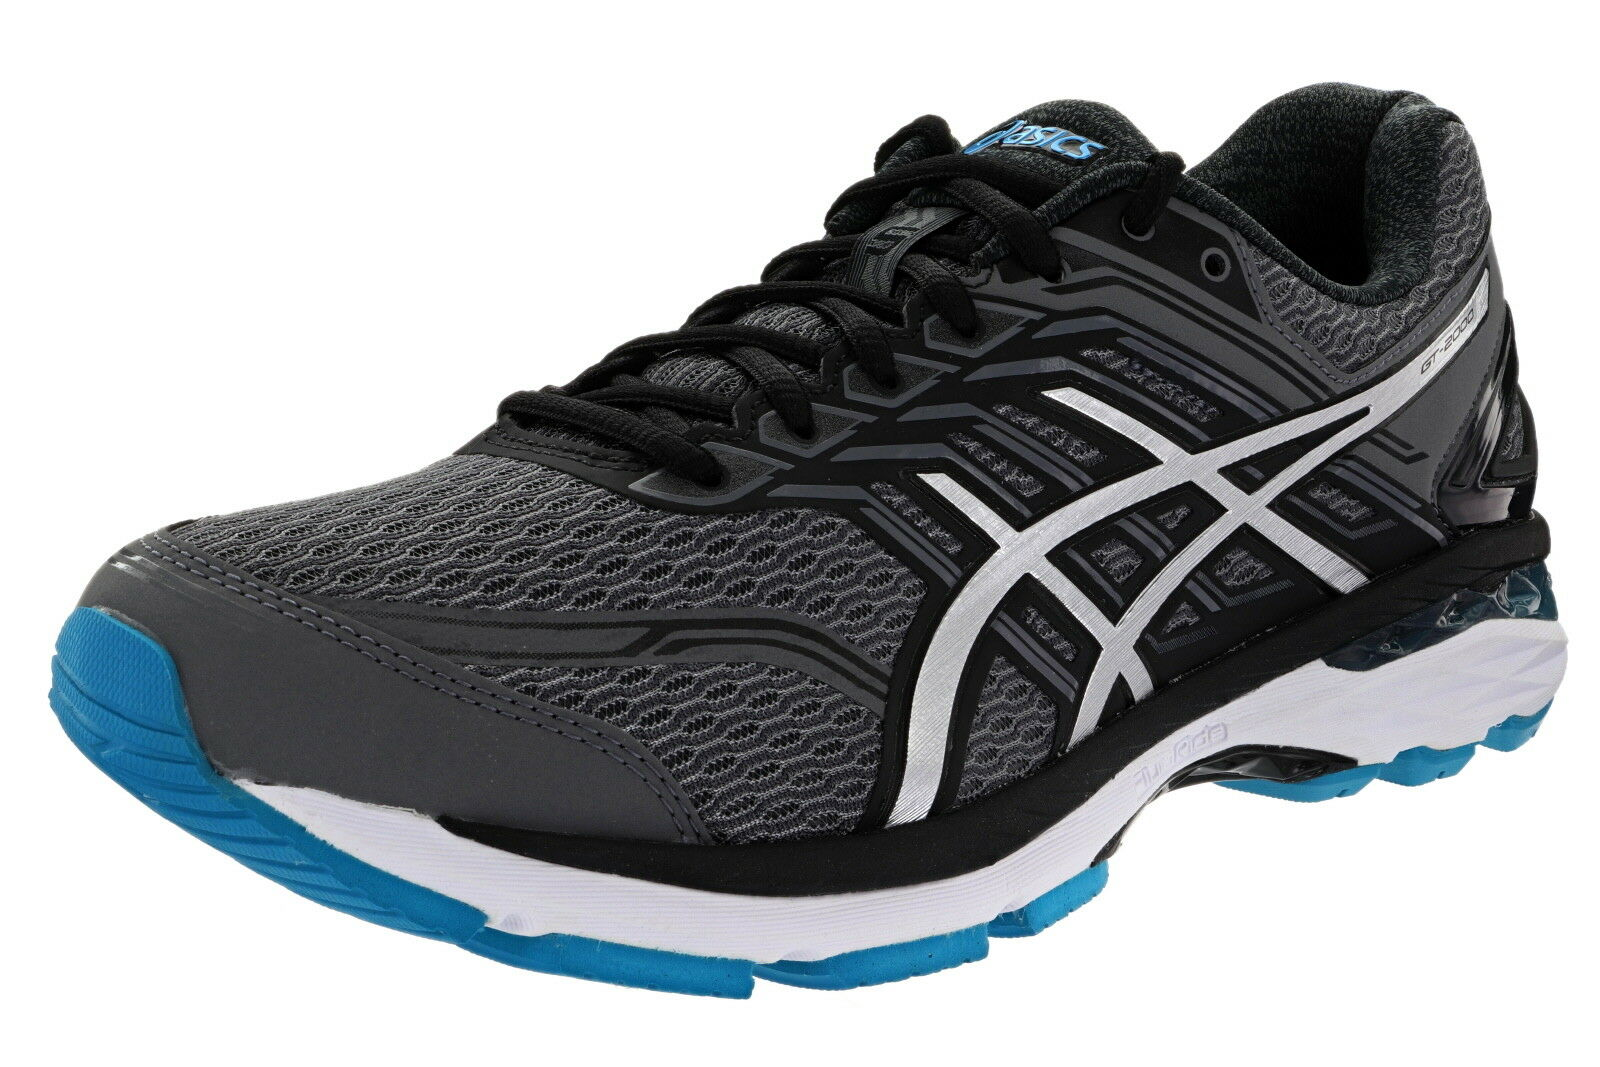 Asics GT 2000 5 (4E) Men's Size 8 Extra Wide Width Running shoes T709N-9793